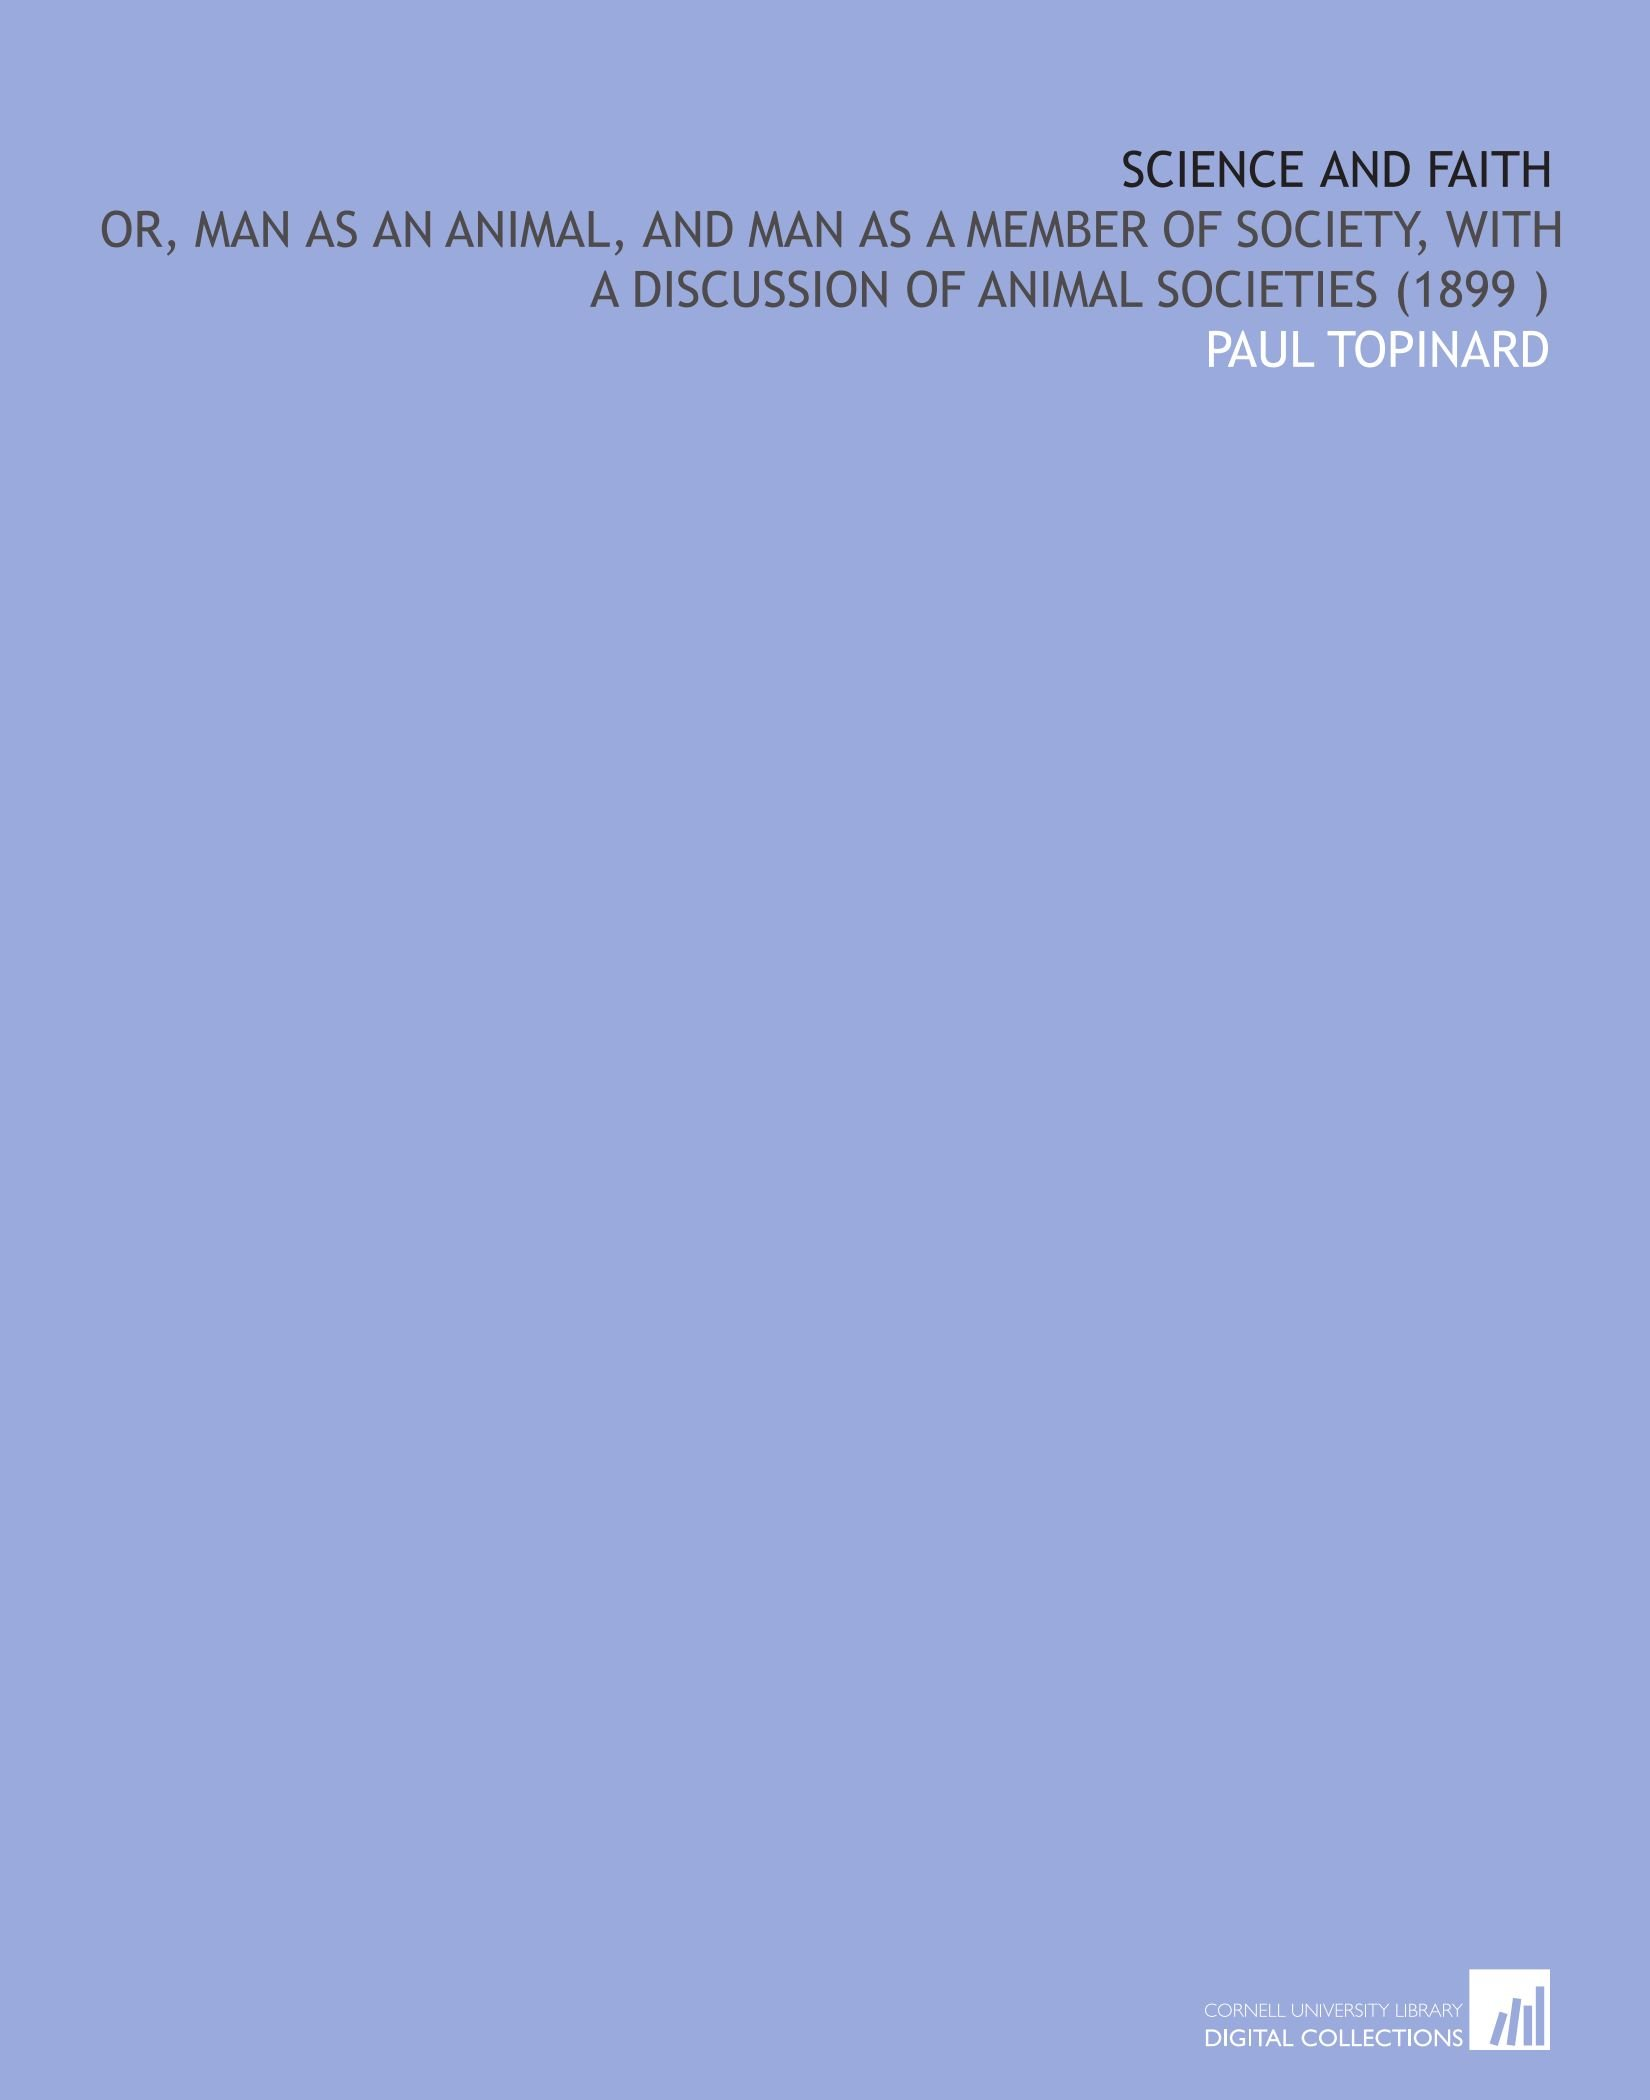 Download Science and Faith: Or, Man as an Animal, and Man as a Member of Society, With a Discussion of Animal Societies (1899 ) PDF